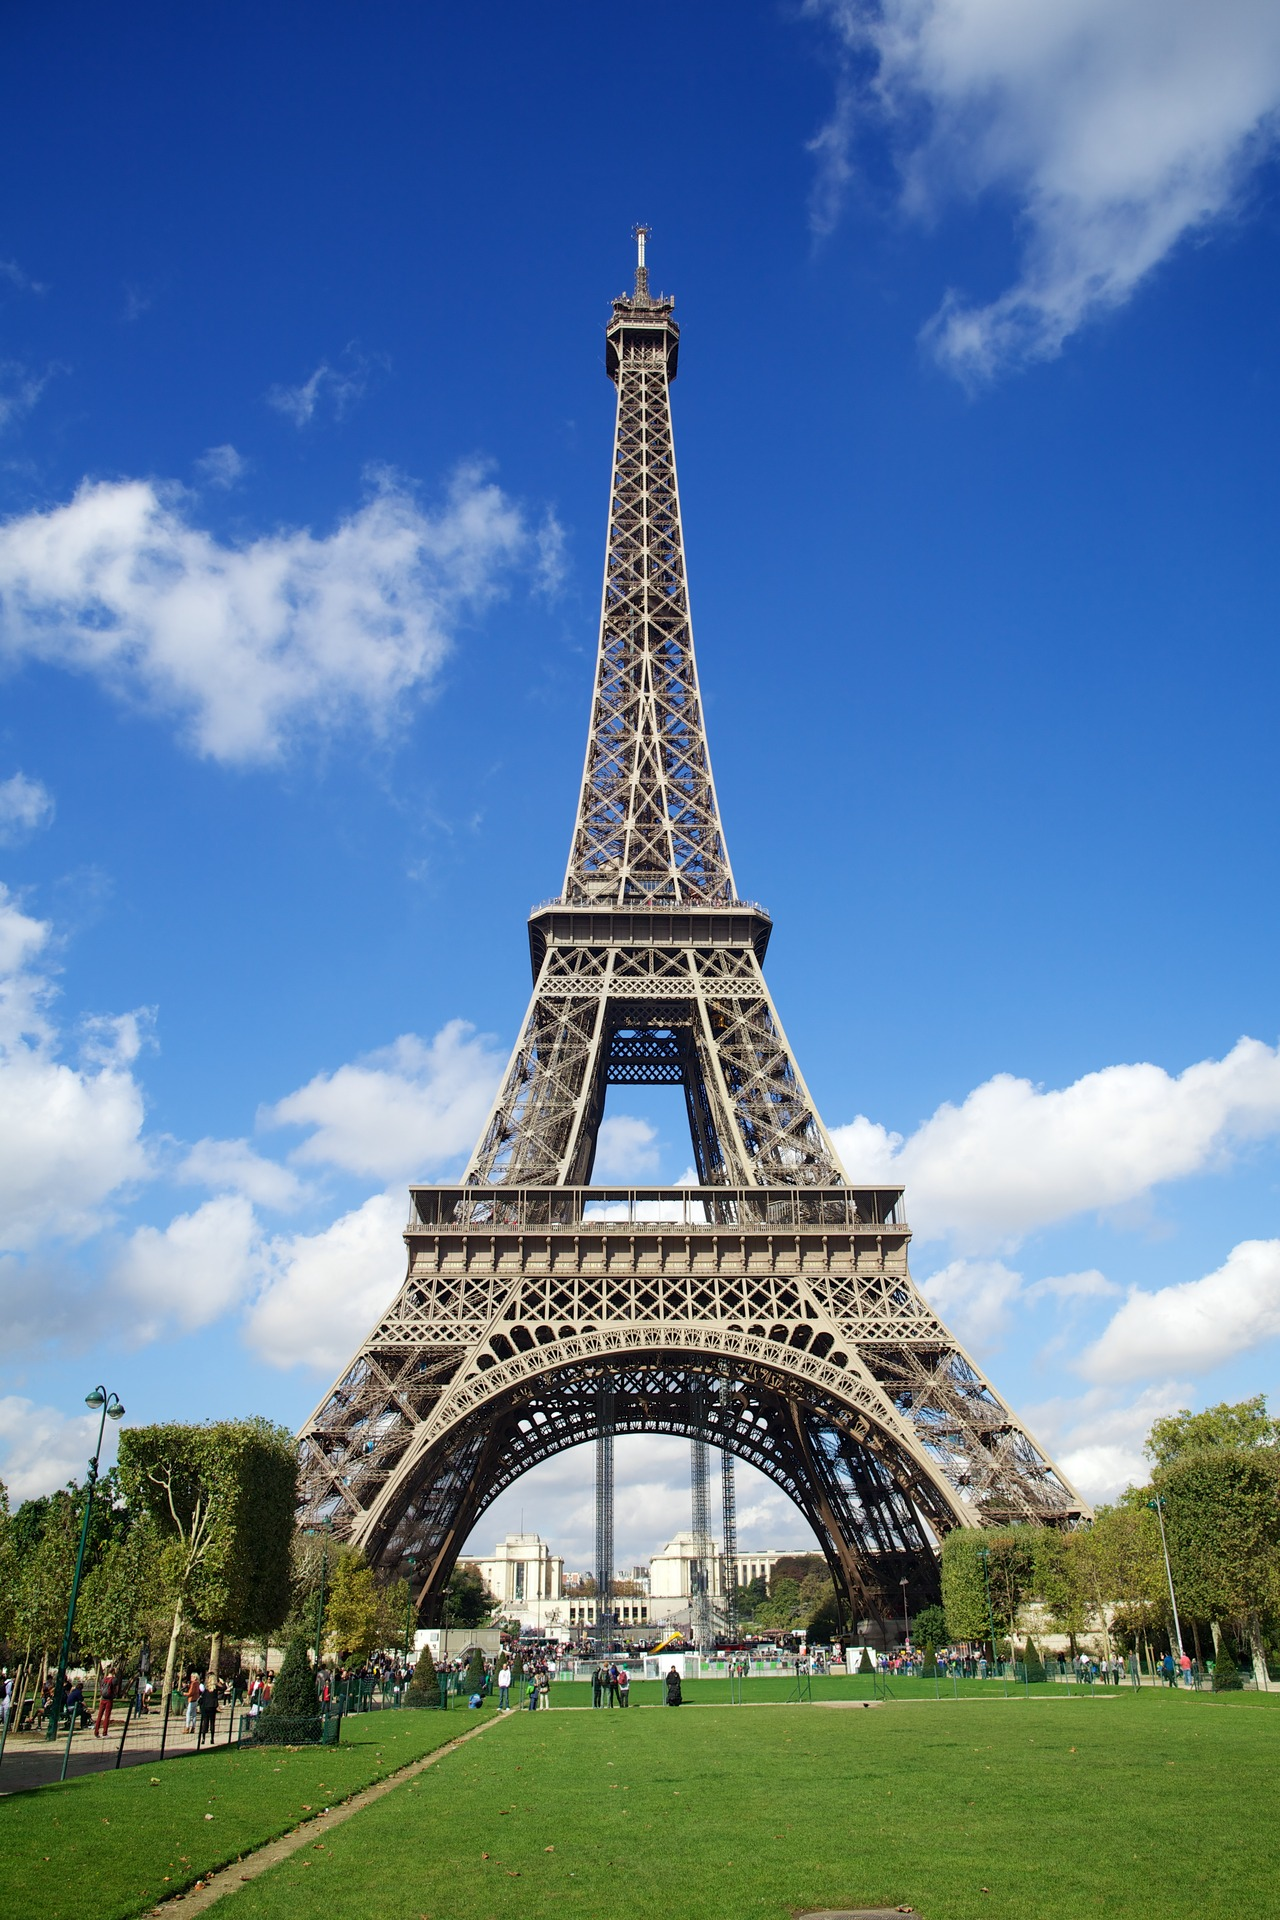 tour eiffel wiki paris fandom powered by wikia. Black Bedroom Furniture Sets. Home Design Ideas